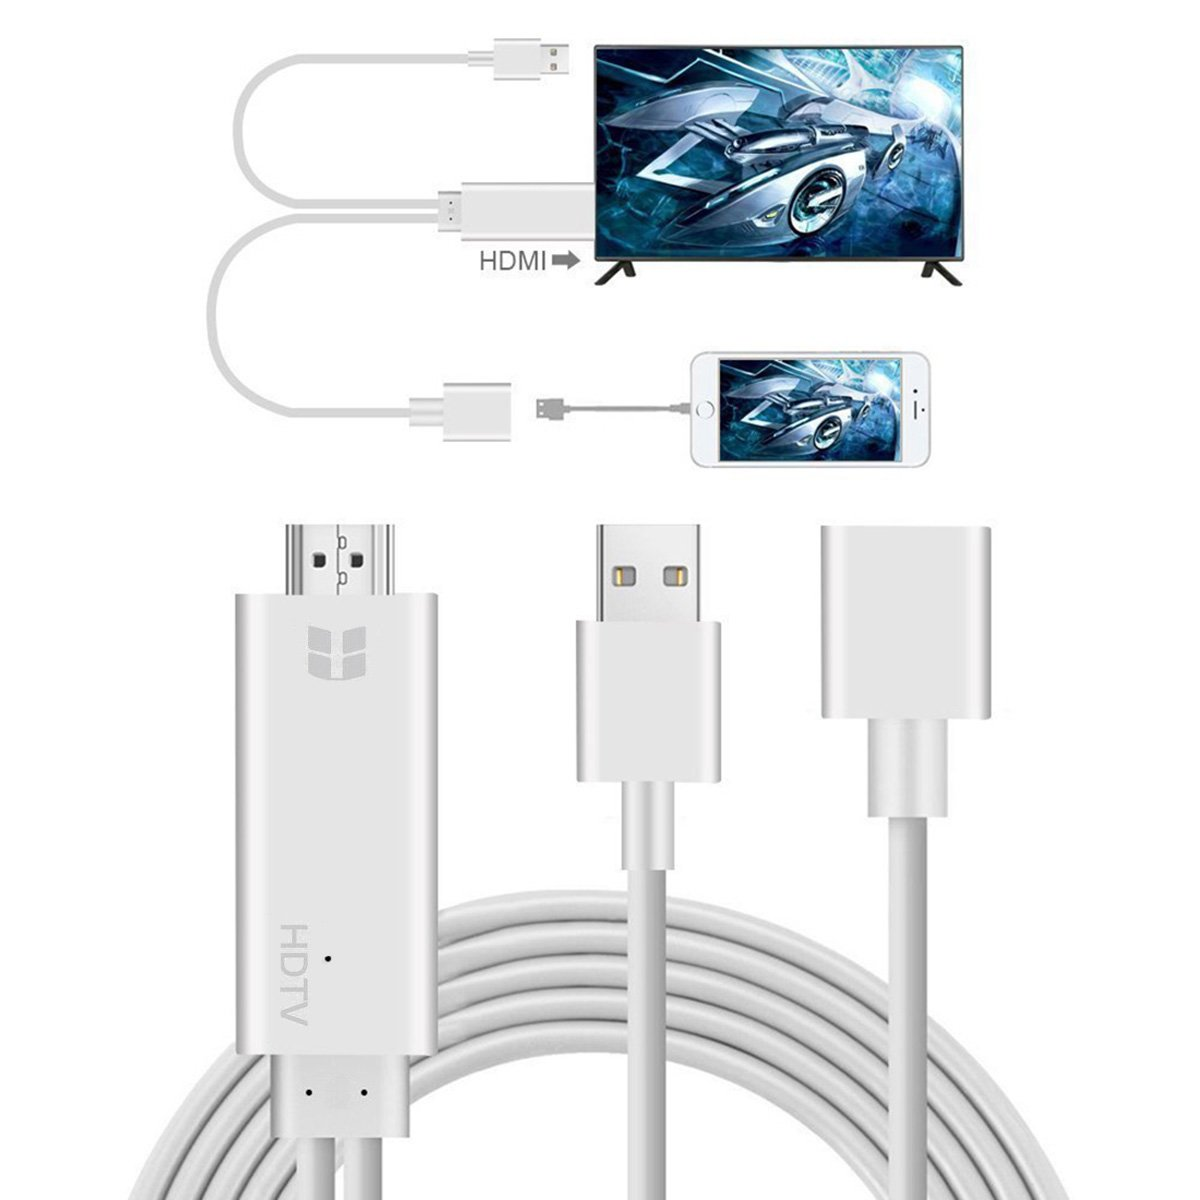 Compatible with iPhone to HDMI Adapter Cable, 3 in 1 HDMI/Micro USB/TYPE C Adapter, 1080P HDTV Cord Converter for iPhone Xs Max XR X 8 7 6 Plus iPad Pro Air Mini iPod - Plug and Play, I4570